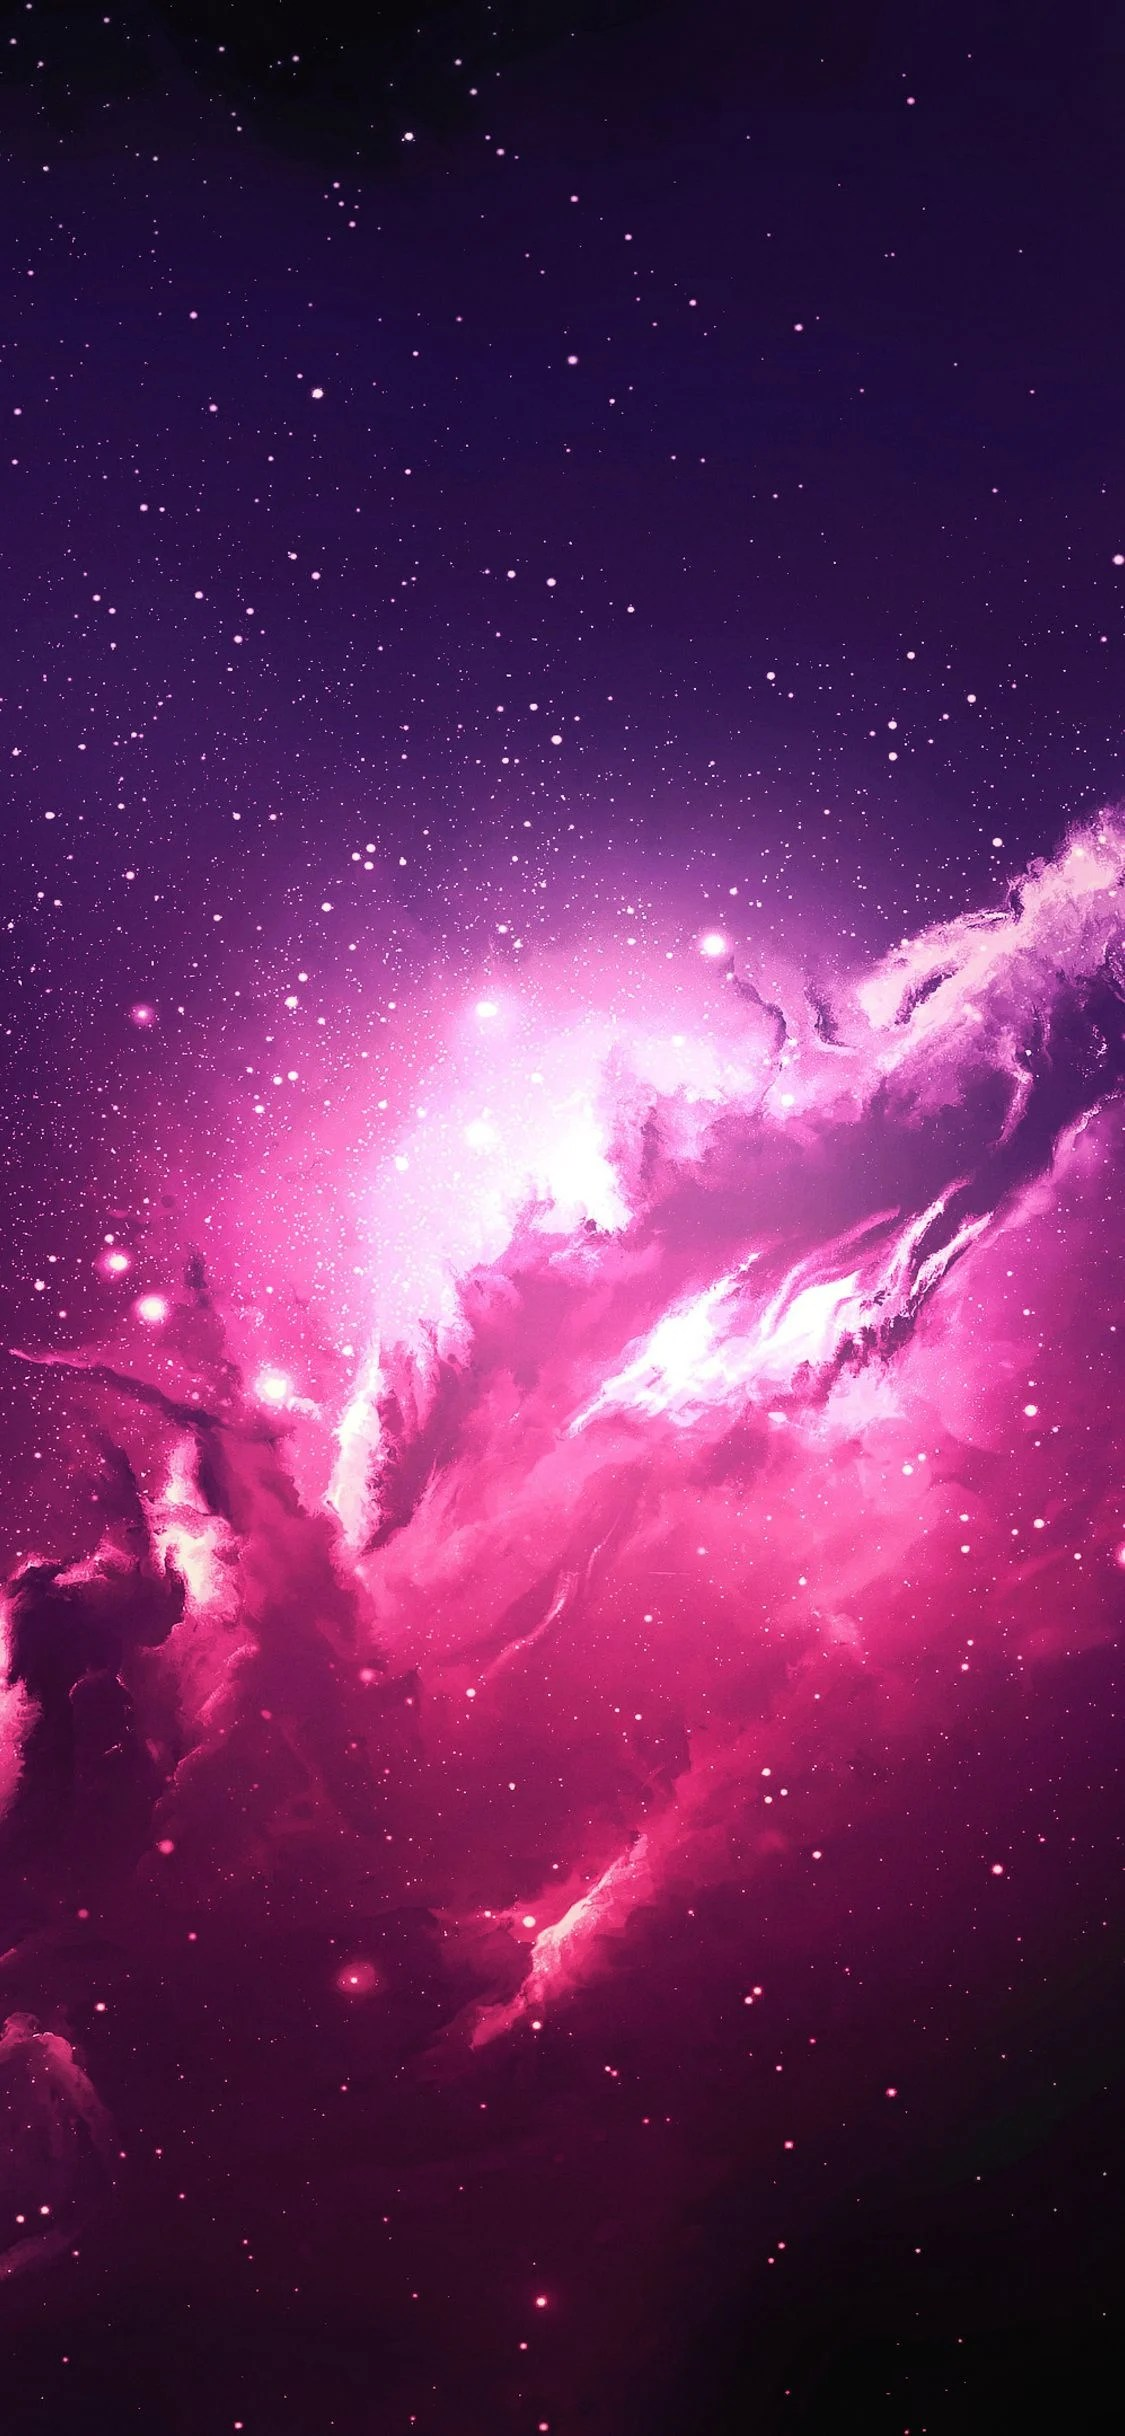 Space 4k Phone Wallpapers Top Free Space 4k Phone Backgrounds Wallpaperaccess